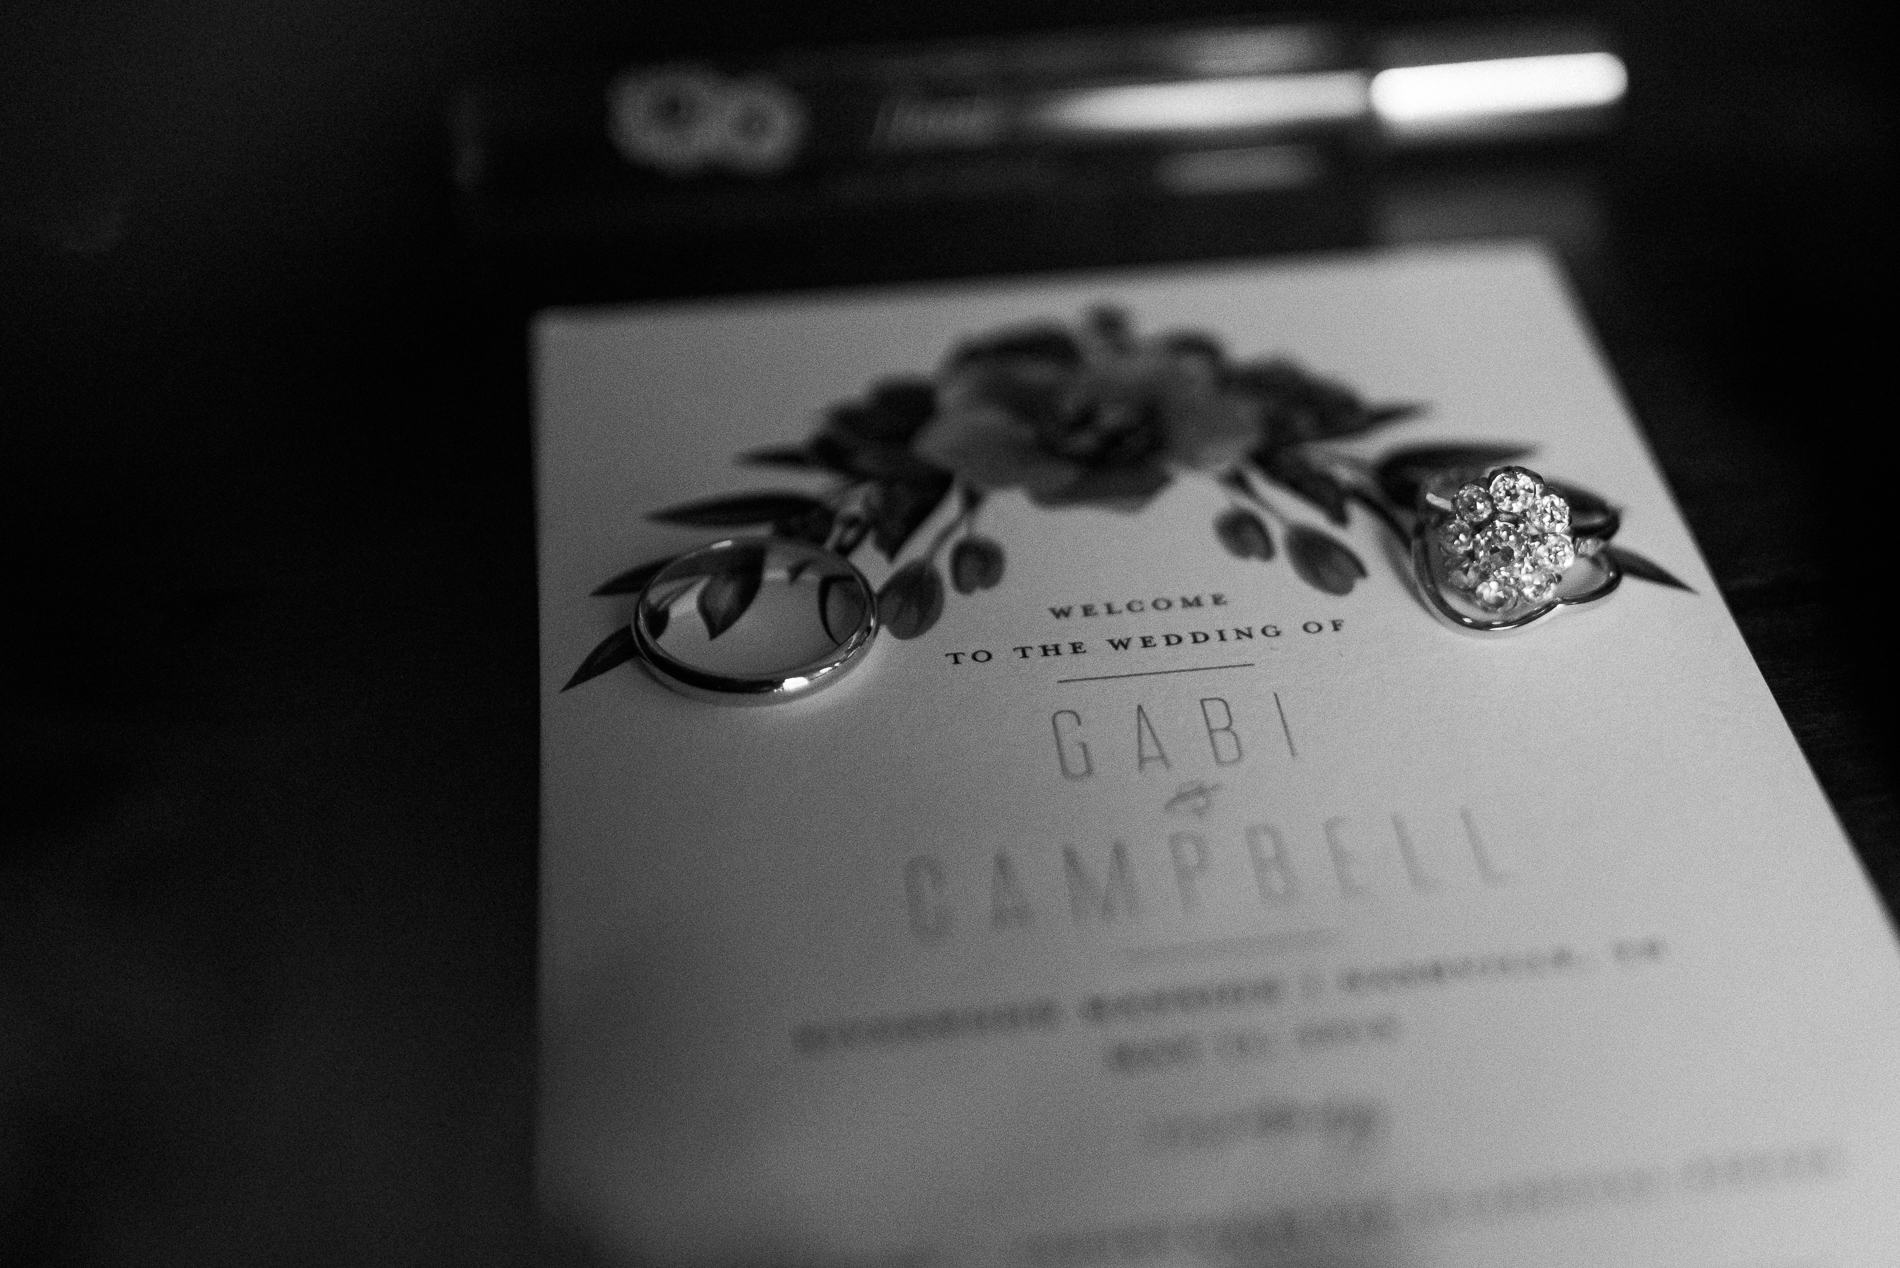 gabi and campbell east nashville wedding at riverwood mansion by wilde company-5.jpg